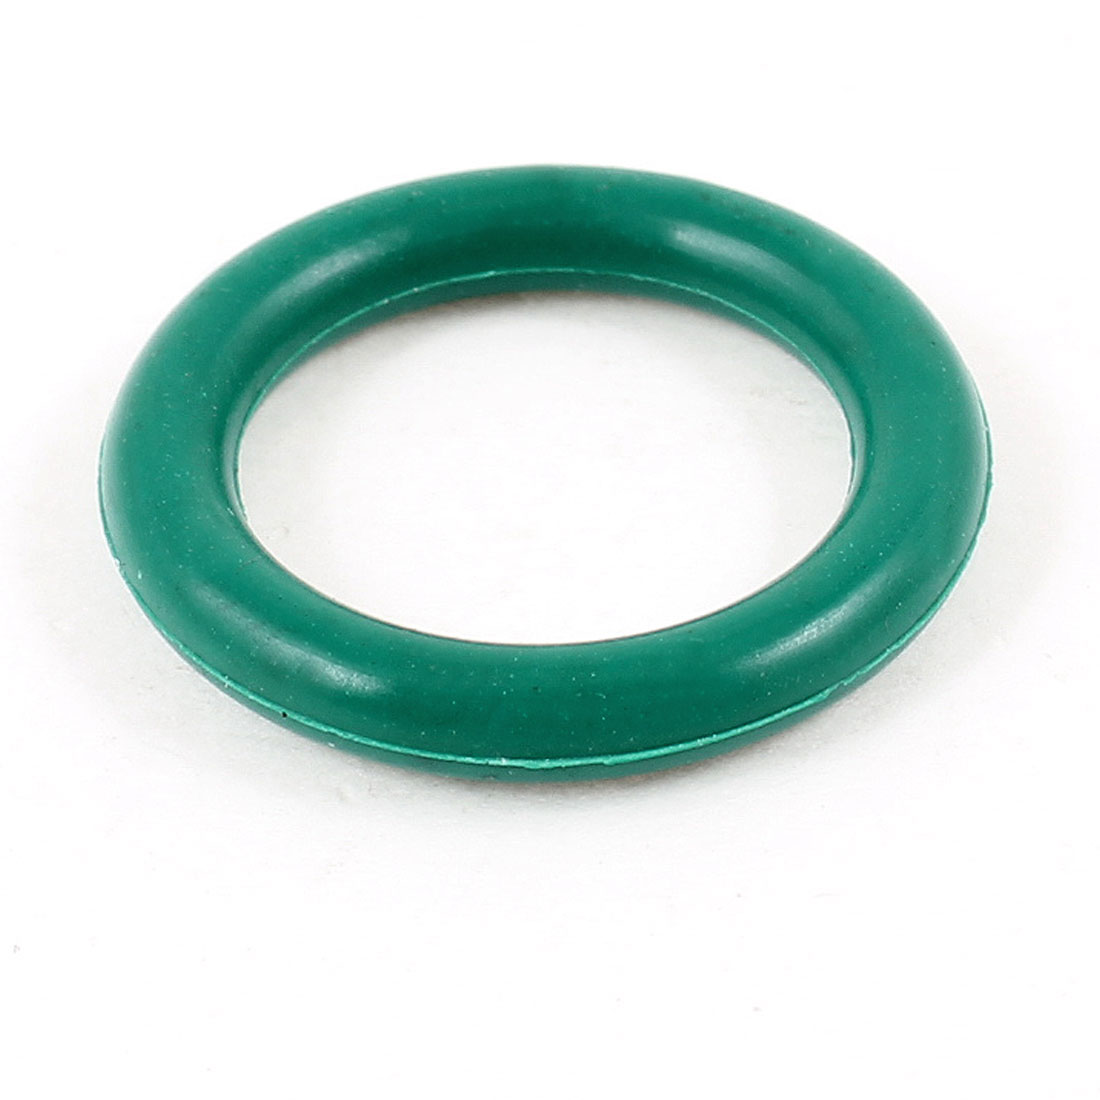 20mm x 14mm Green Rubber Oil Seal O Rings Gaskets Grommets